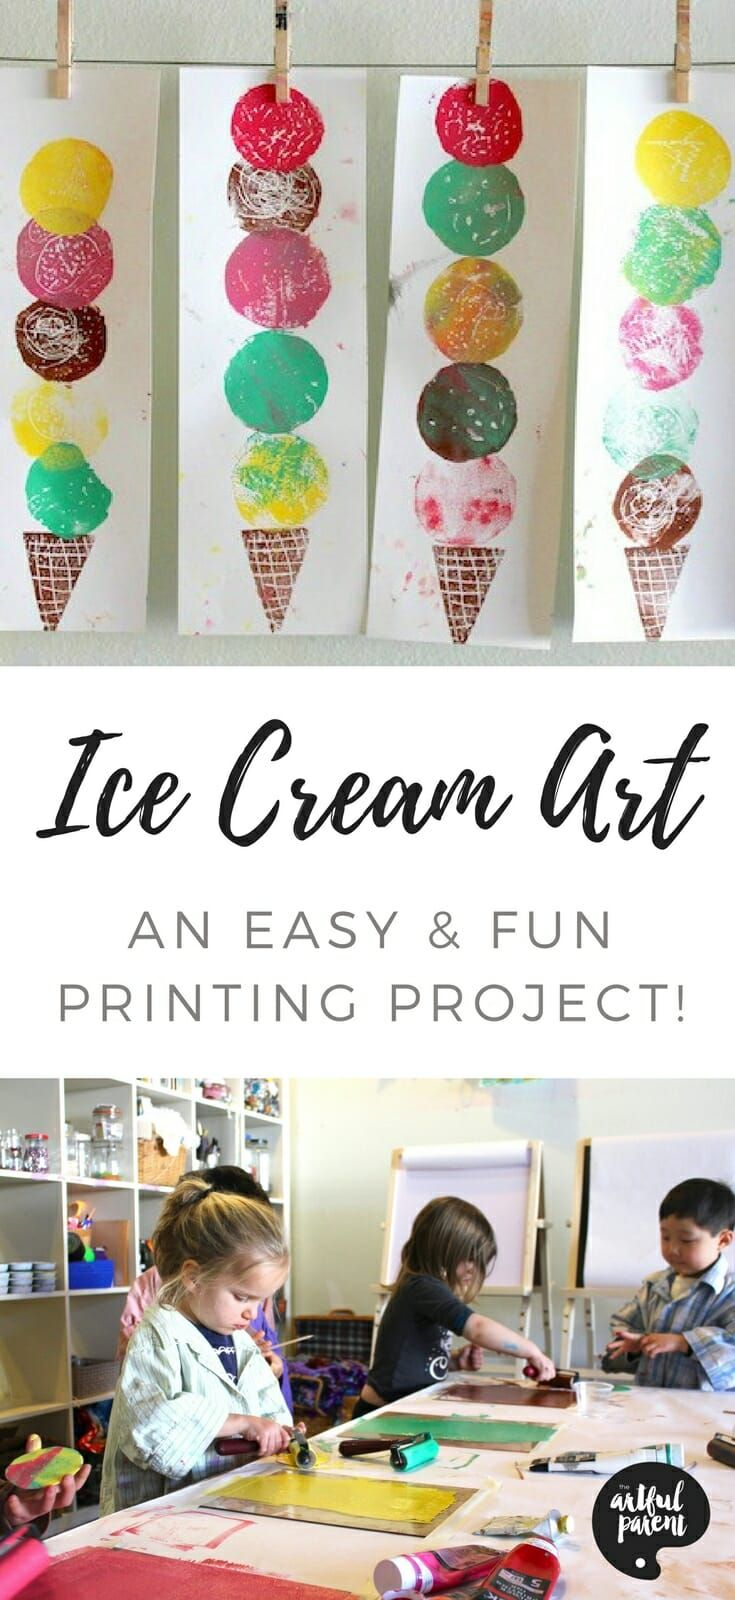 Colorful Ice Cream Art - An Easy Printmaking Project for Kids | Ice ...